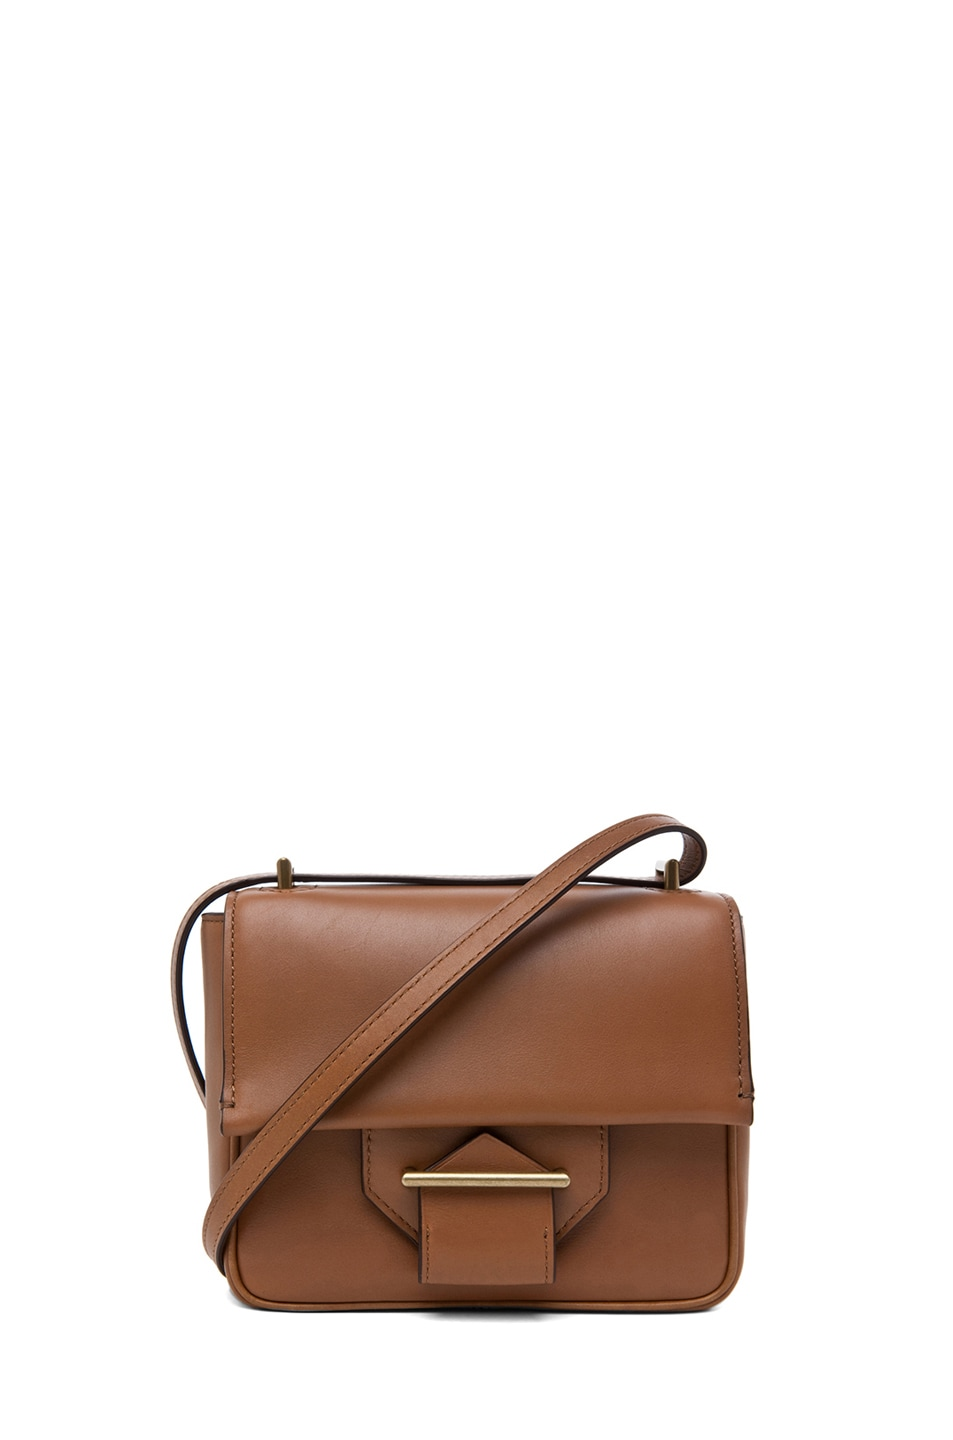 Image 1 of Reed Krakoff Standard Mini Shoulder Bag in Saddle